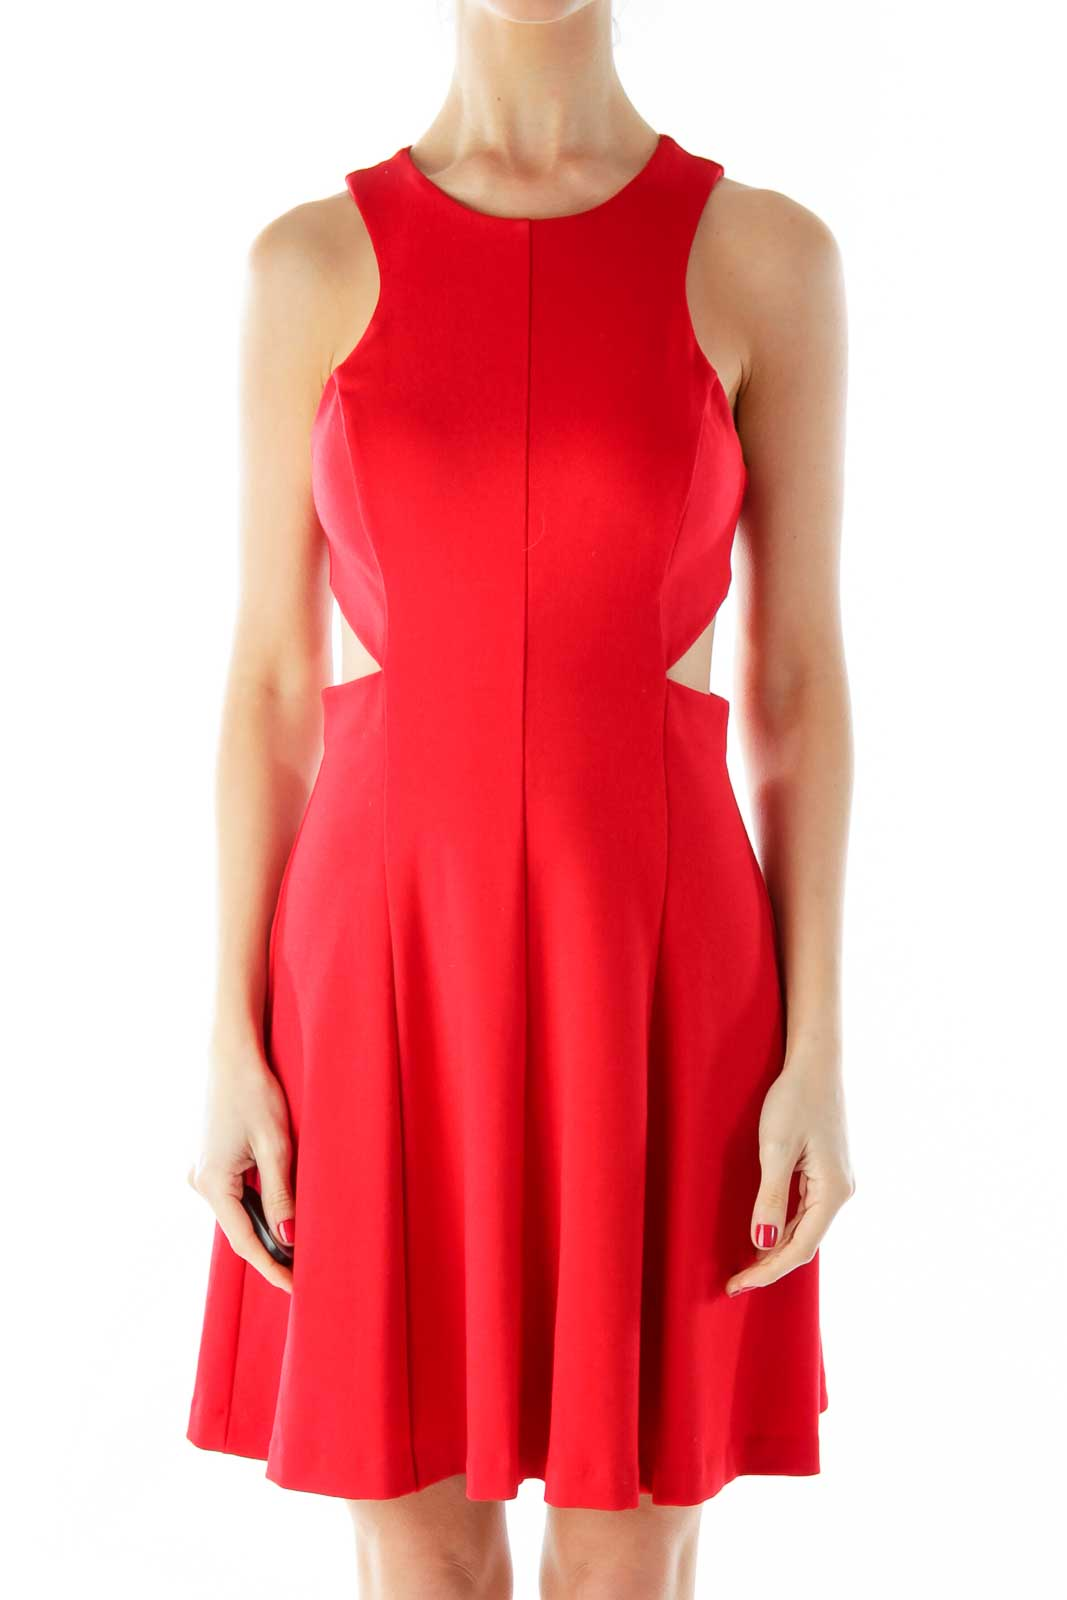 Red A-Line Cut-Out Dress Front